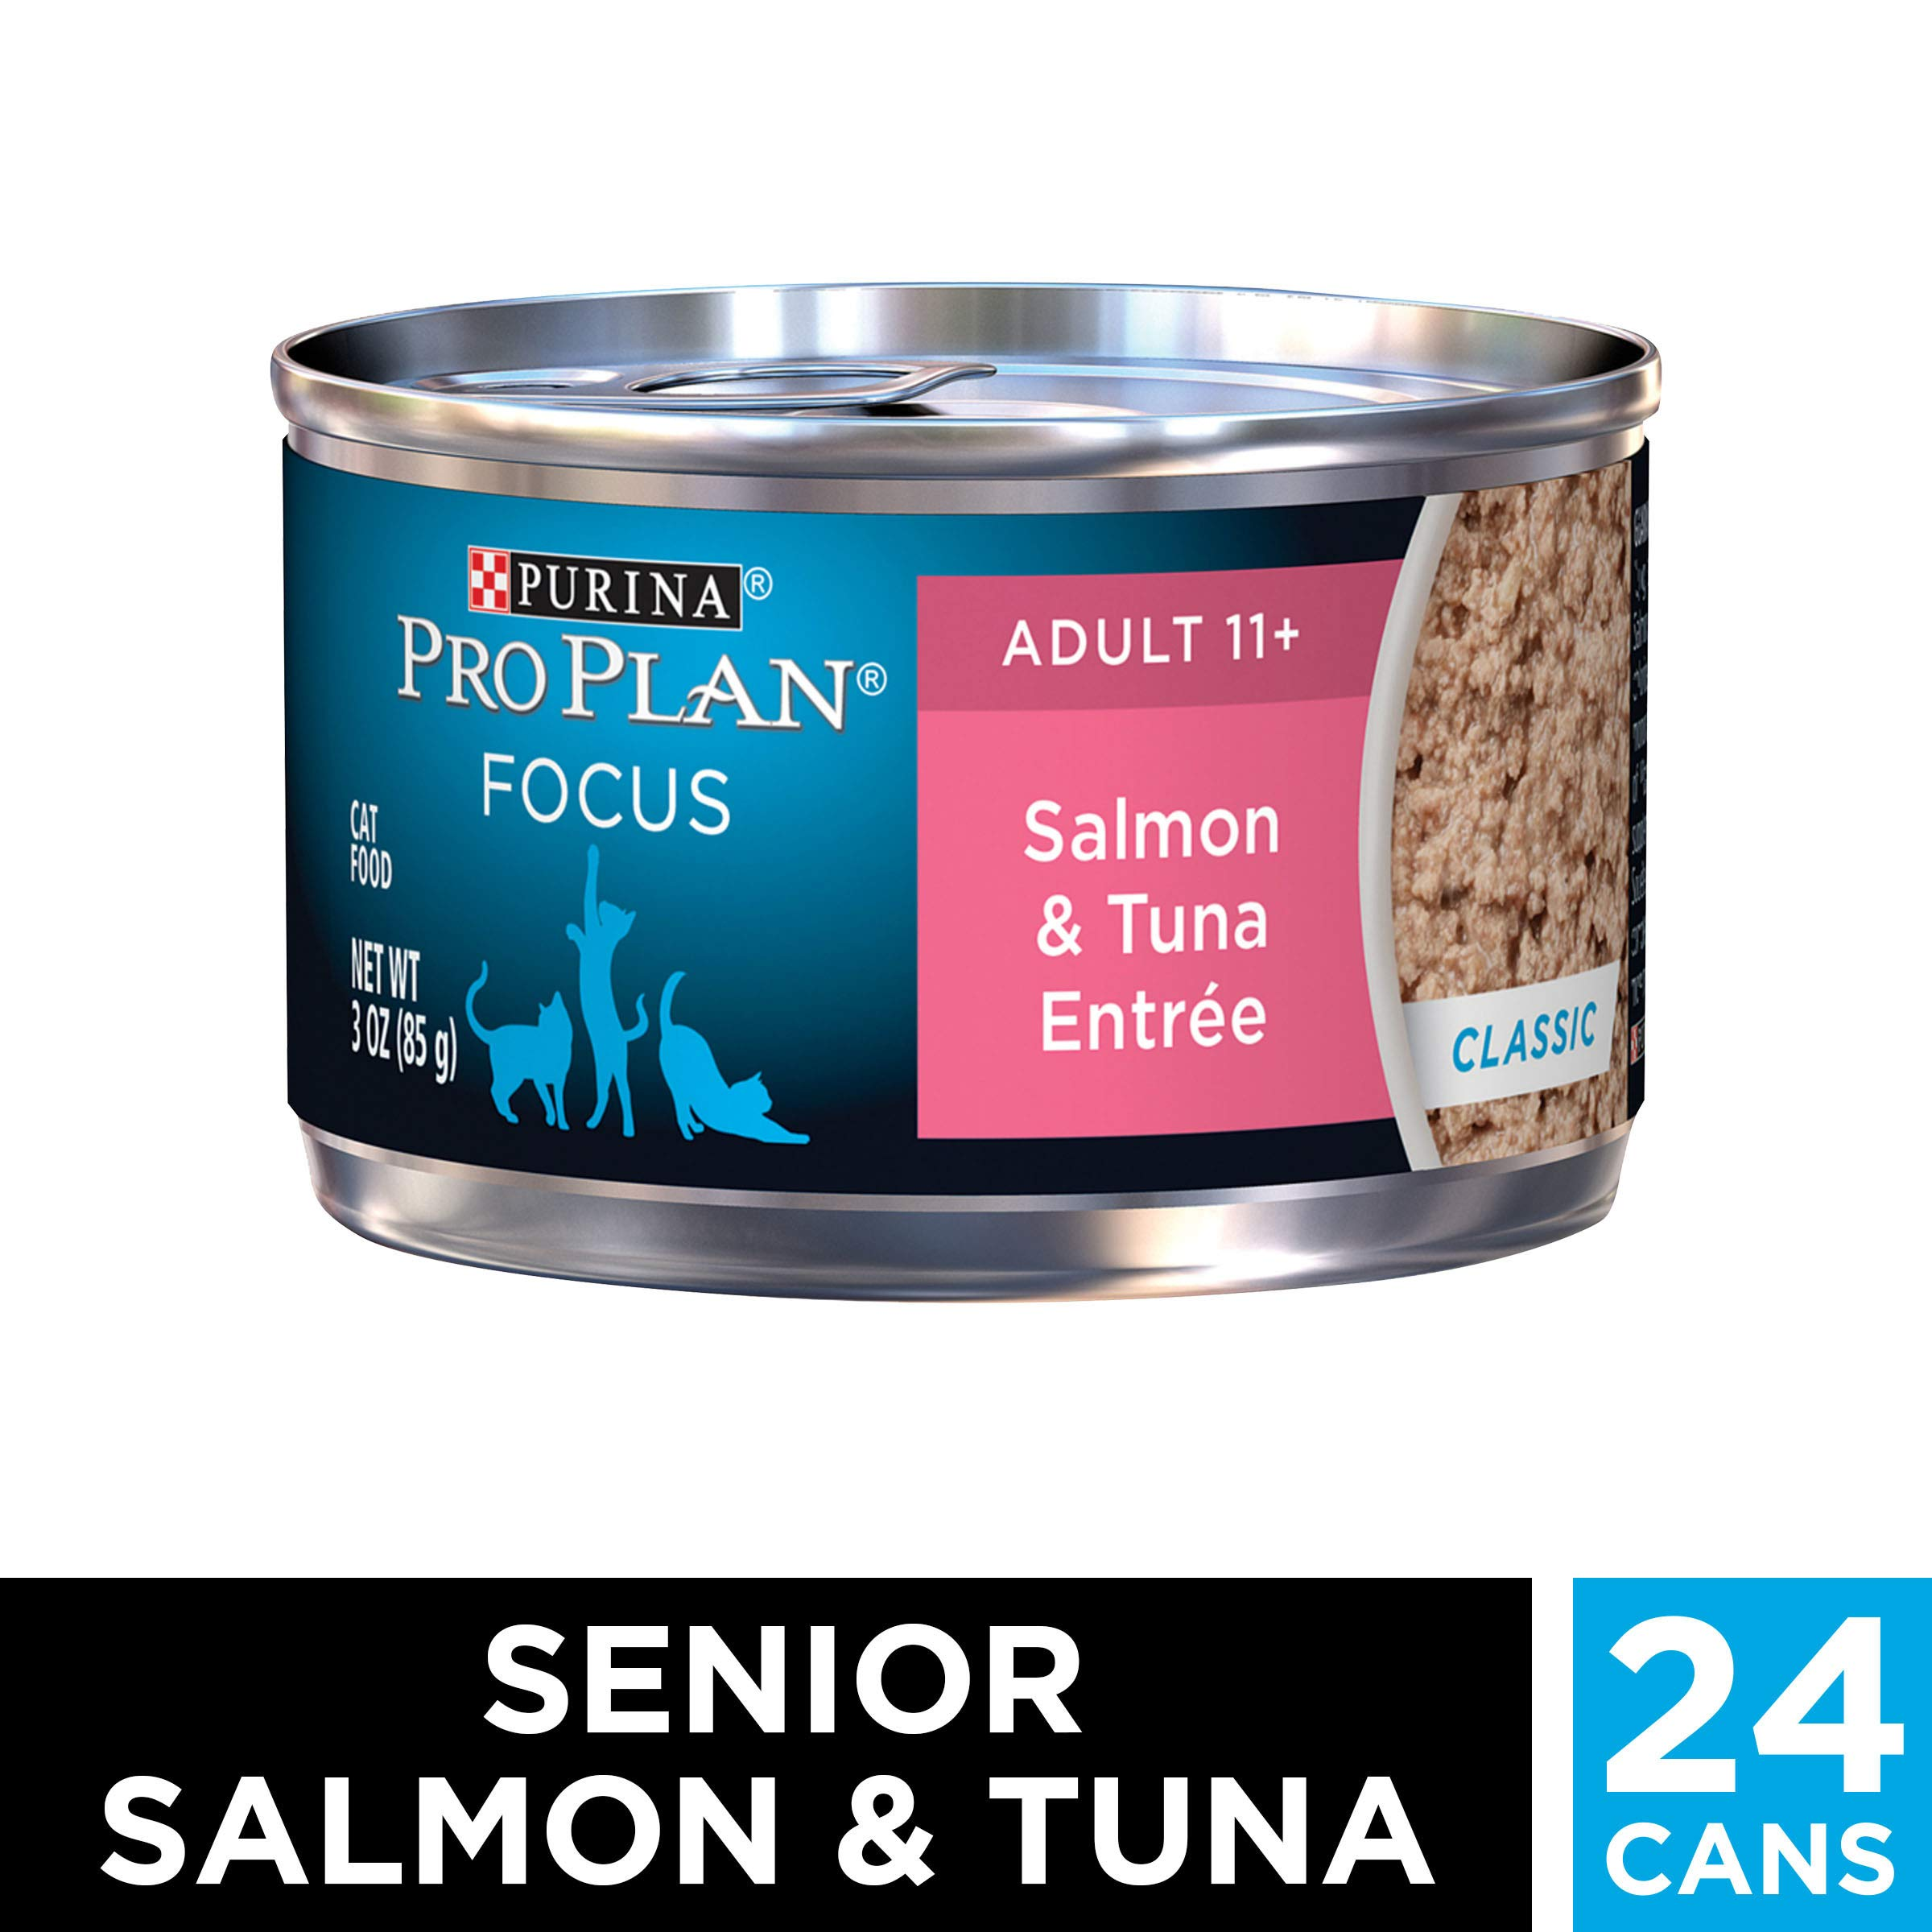 Purina Pro Plan Senior Pate Wet Cat Food, FOCUS Salmon & Tuna Entree - (24) 3 oz. Pull-Top Cans by PURINA Pro Plan